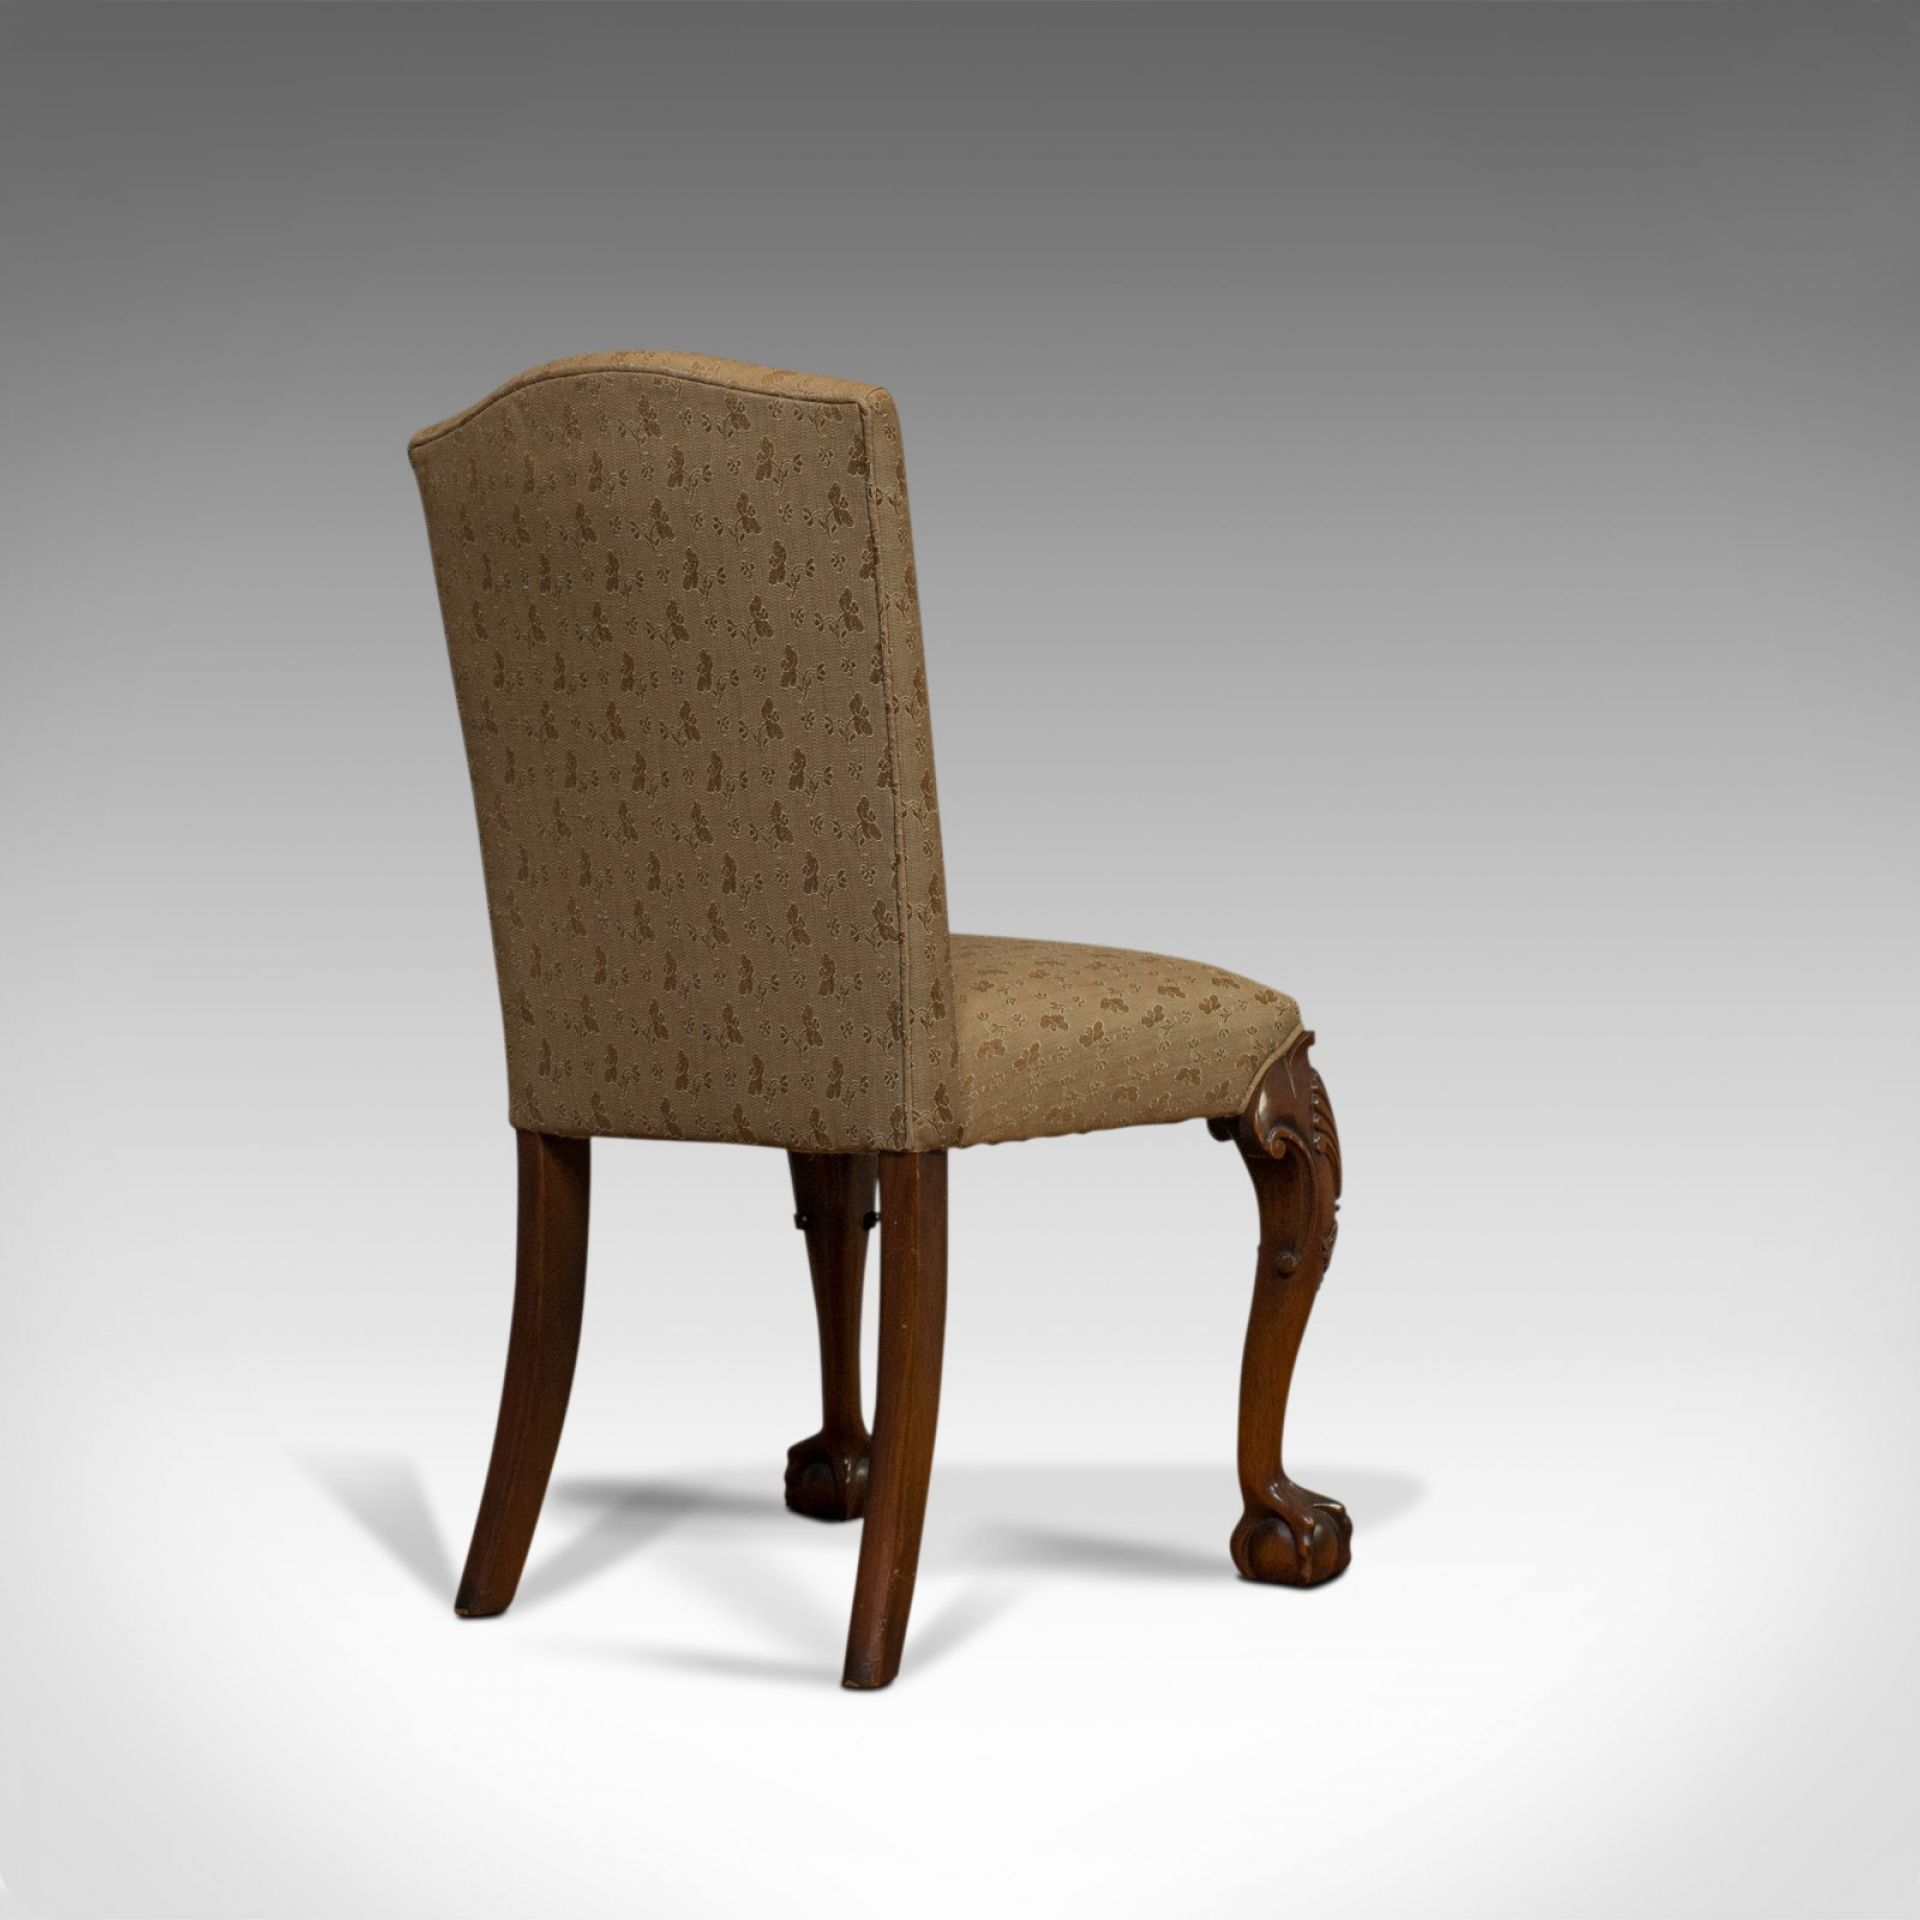 Vintage Side Chair, English, Mahogany, Georgian Revival, Drawing Room